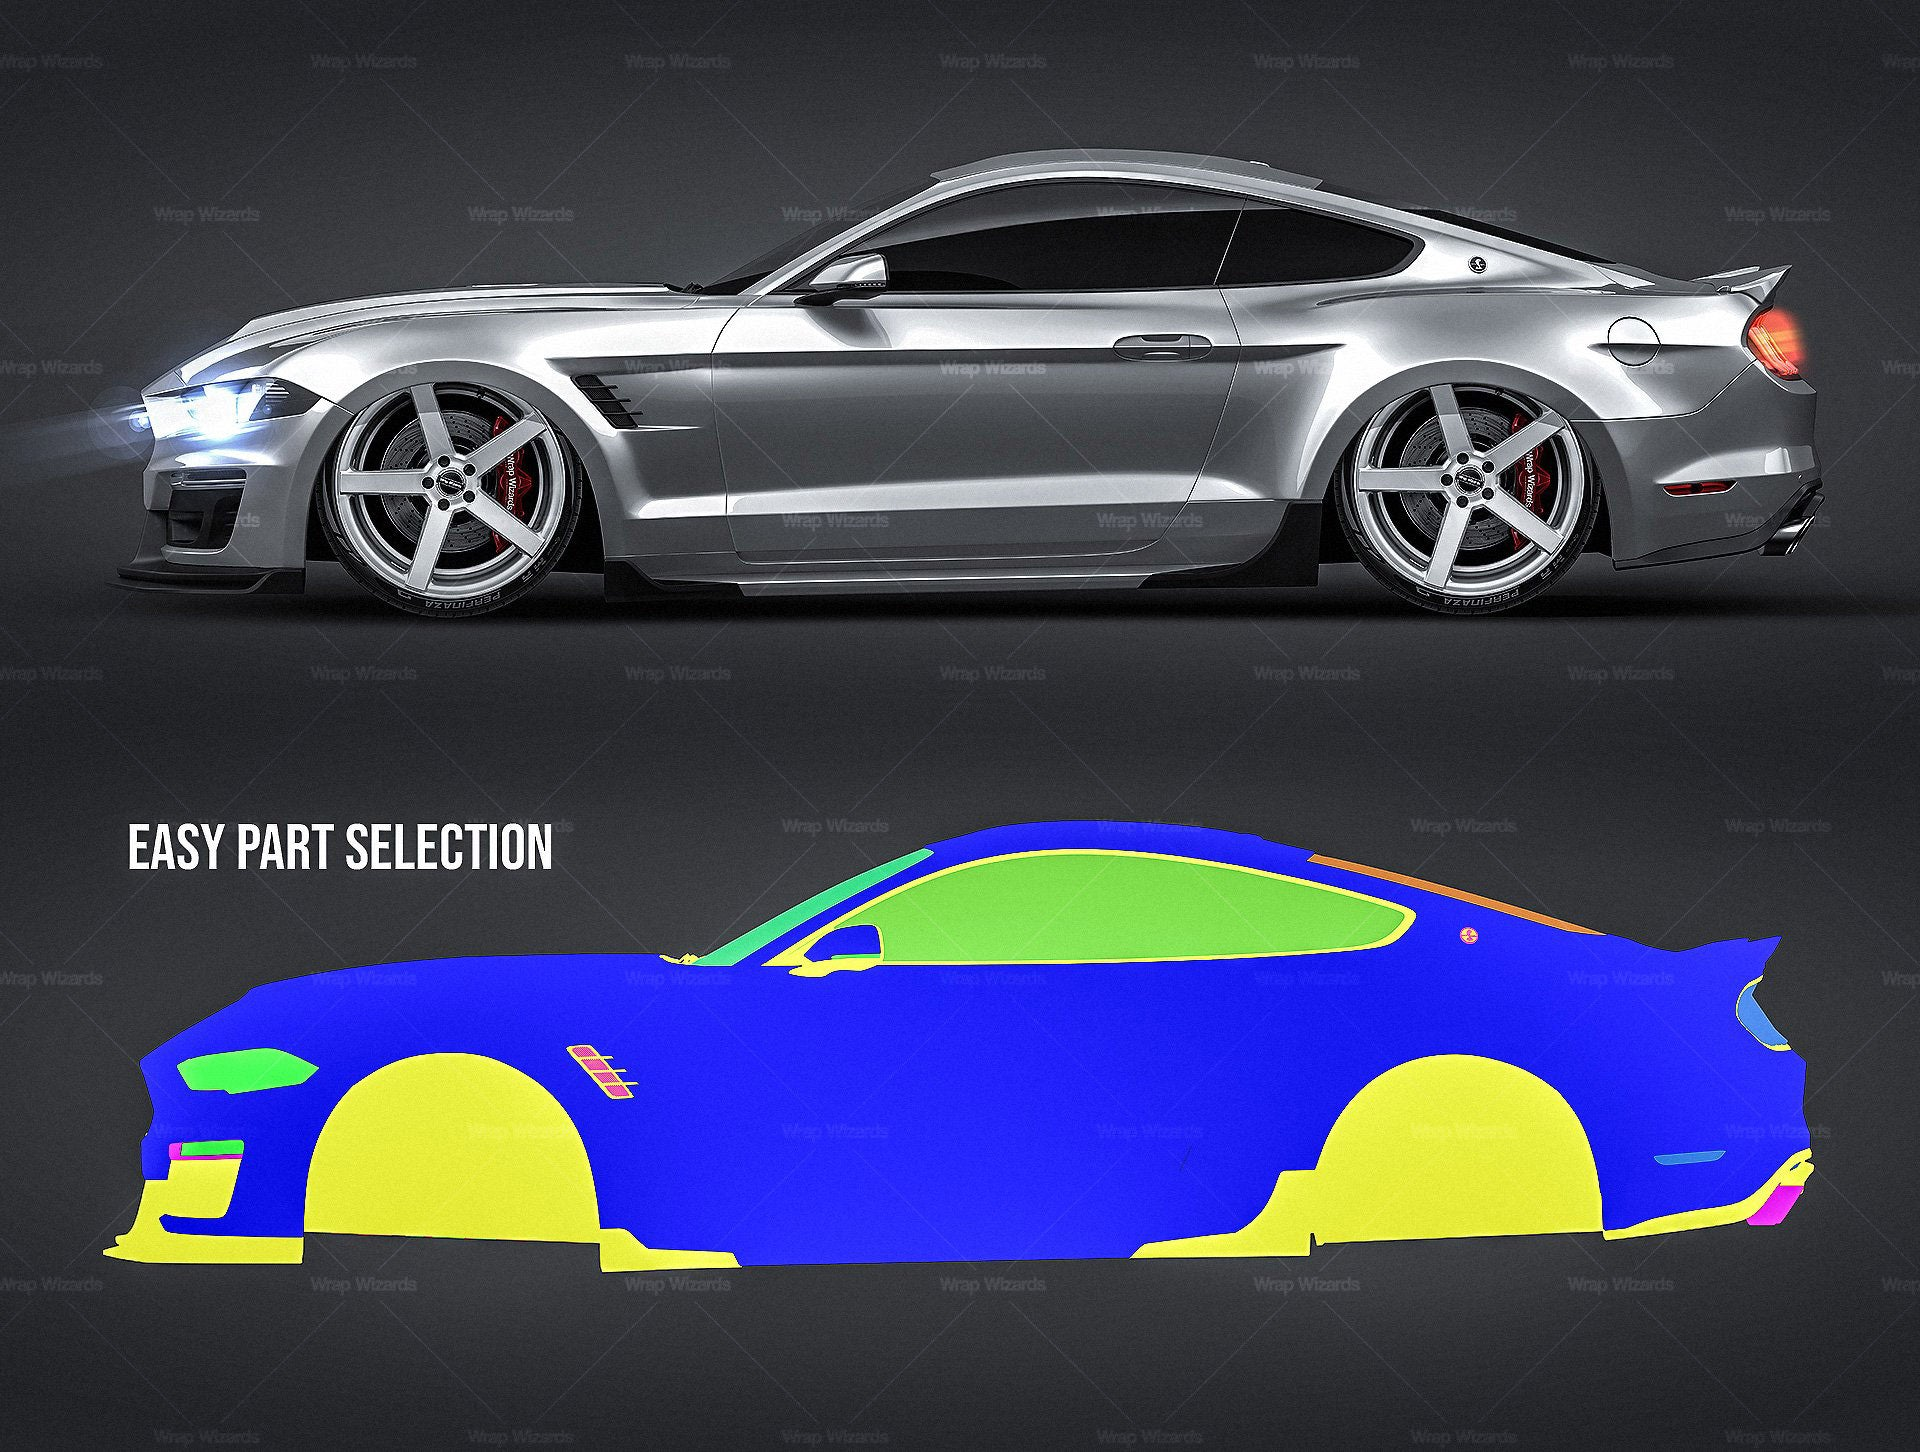 Ford Mustang Shelby Super Snake 2018 - all sides Car Mockup Template.psd